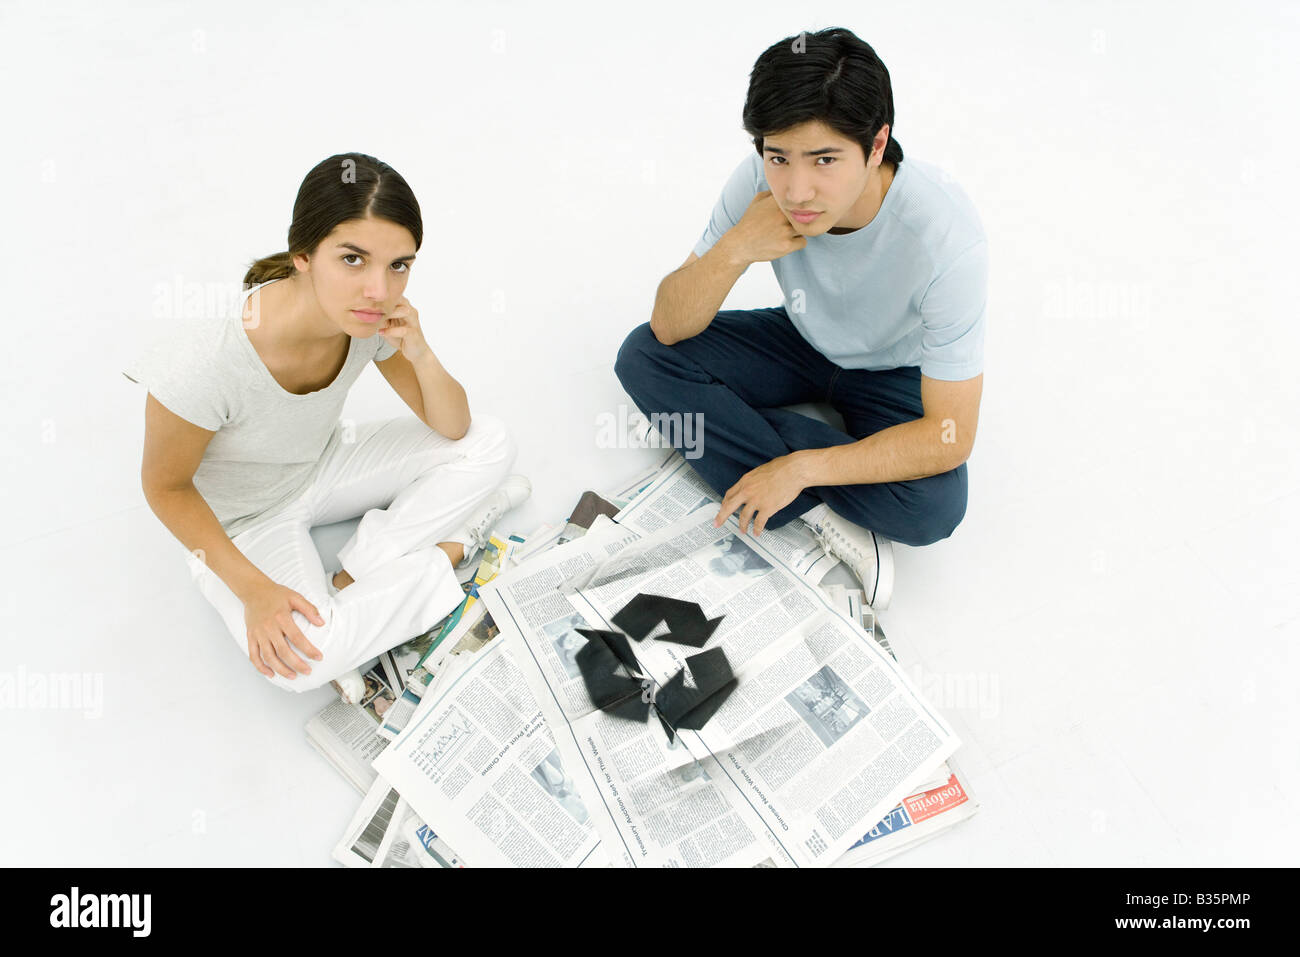 Young couple sitting beside stack of newspapers stenciled with recycling symbol, looking up at camera - Stock Image